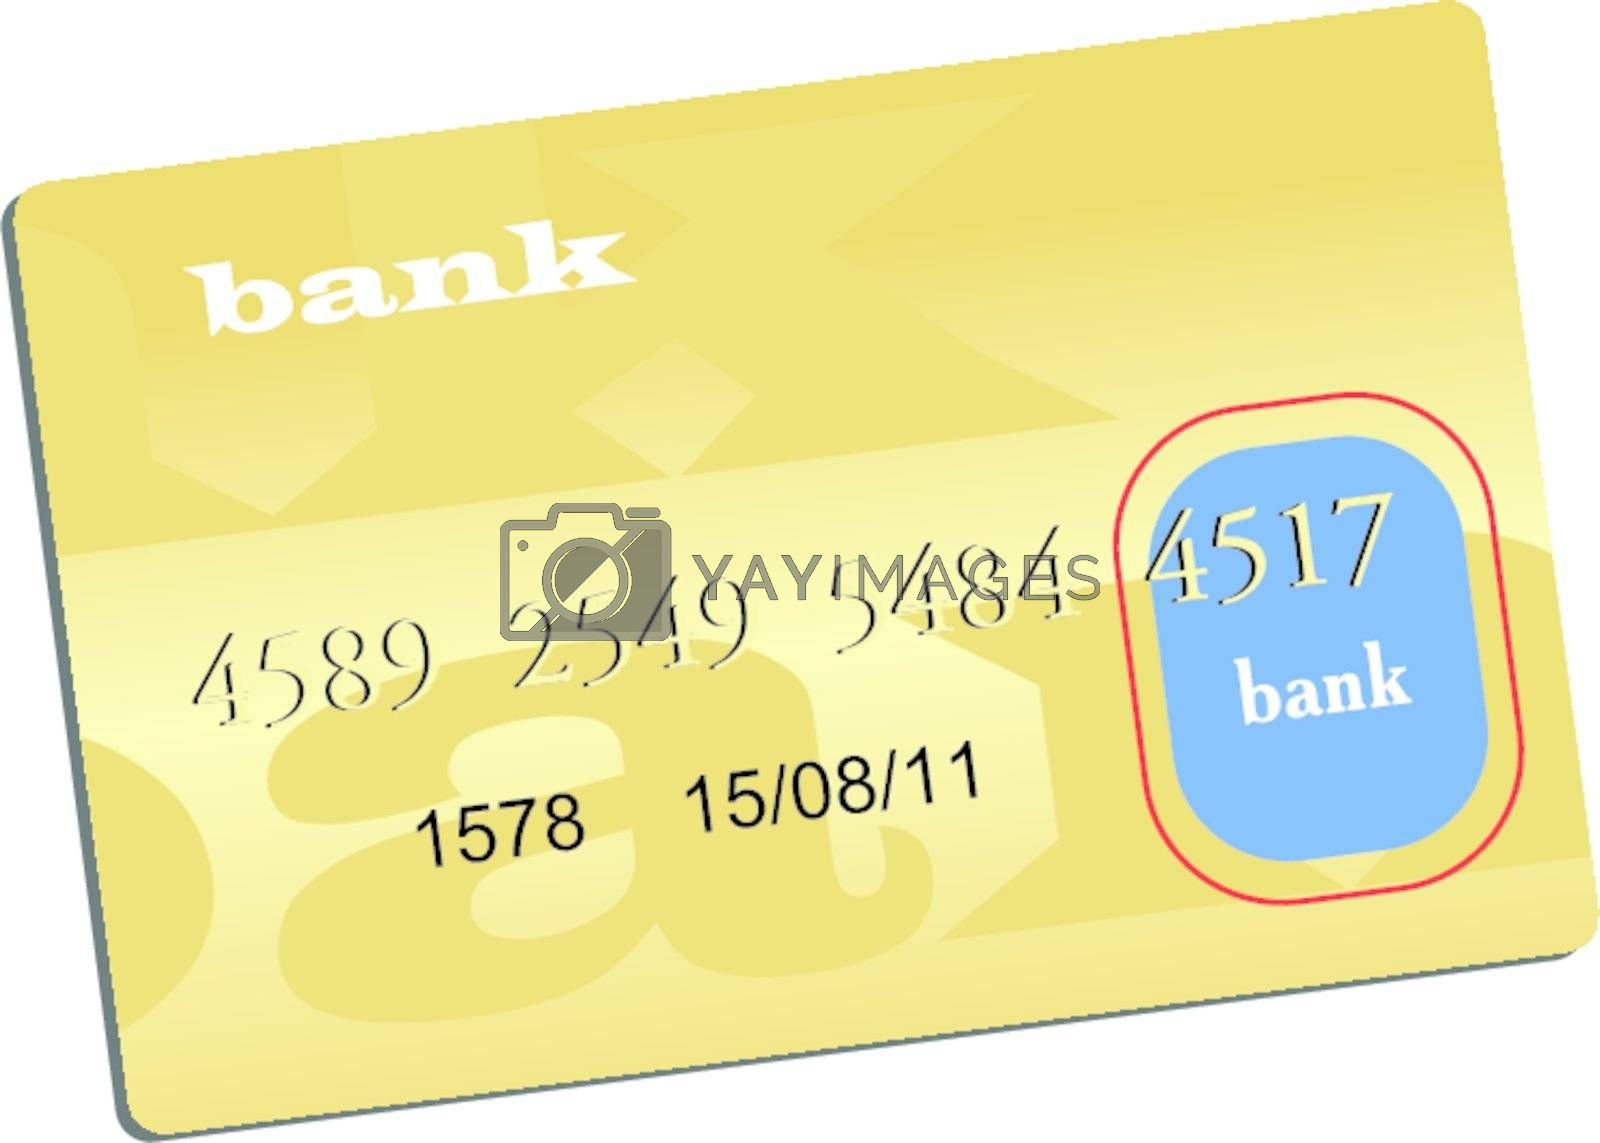 Illustration of golden credit card